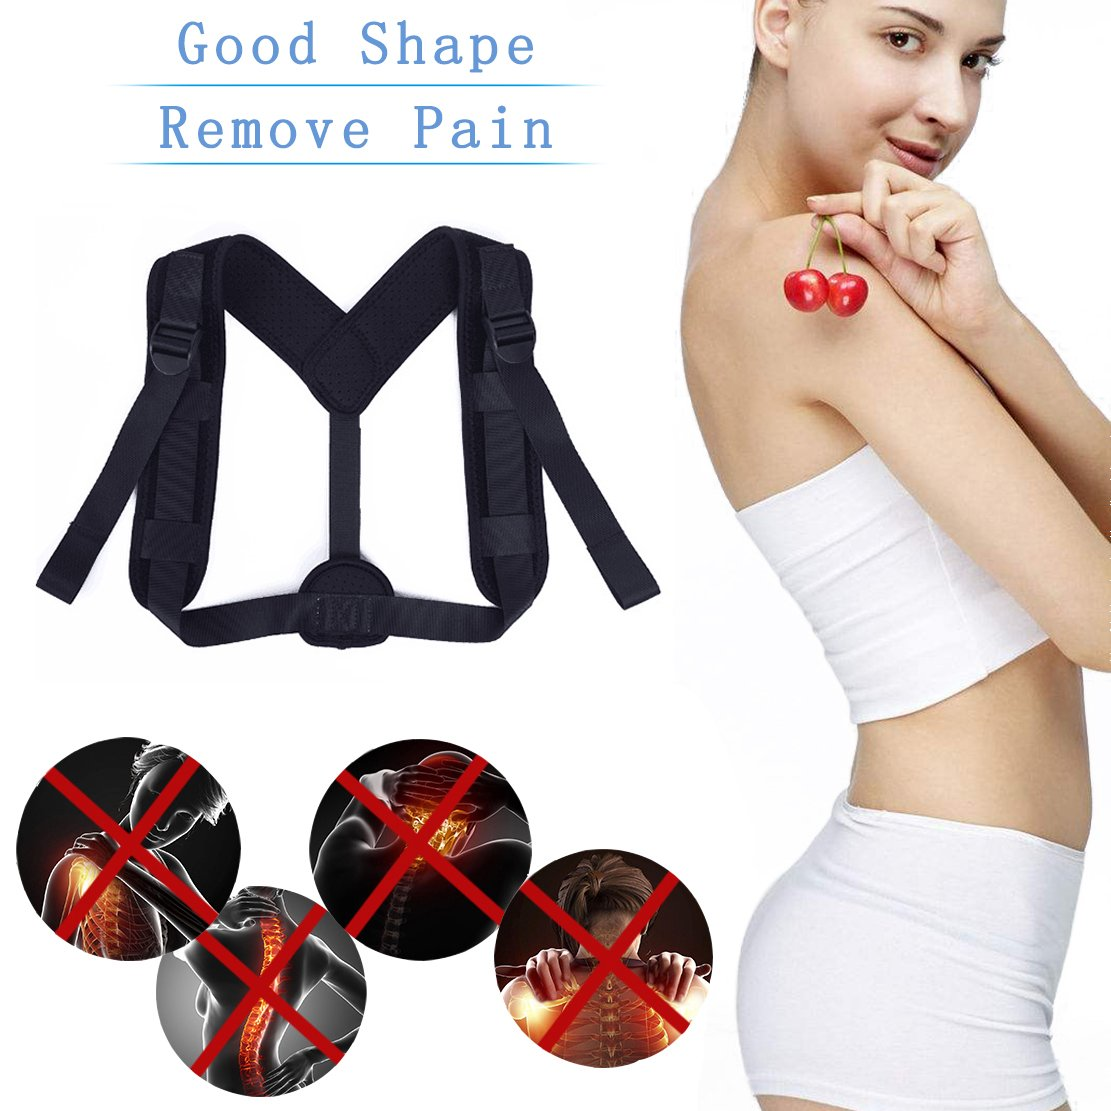 Posture Corrector Upper Back Braces for Women Men, Adjustable Thoracic Brace for Hunching Slouching, Neck Shoulder Supports for Upper Back Alignment and Pain Relief, Bonus Gift 2x Armpit Pads by STSTECH (Image #4)